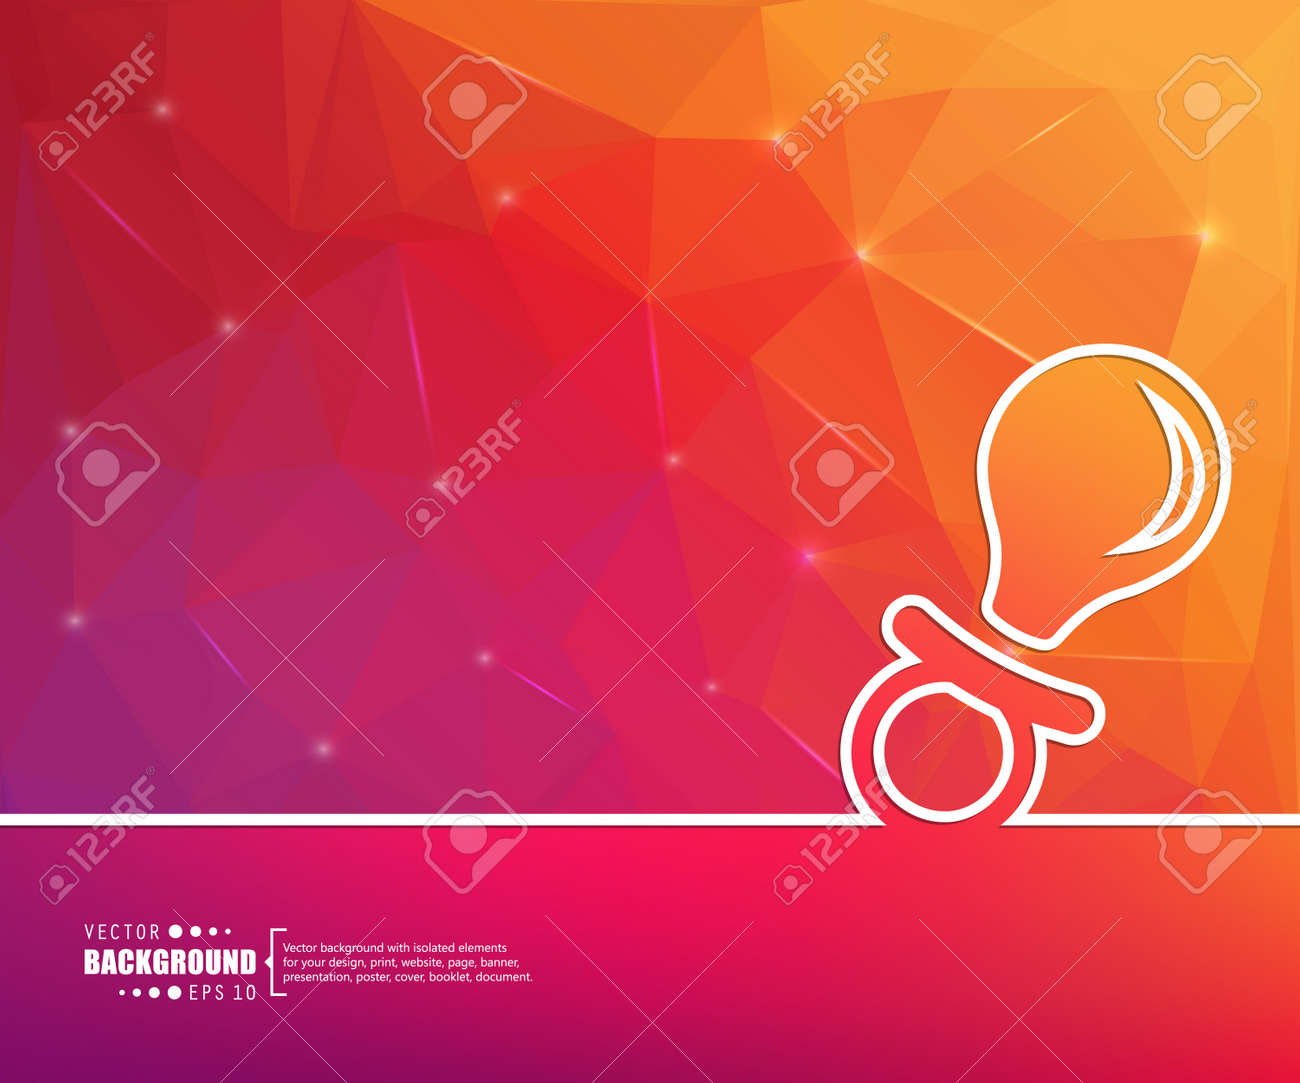 Abstract Vector Background For Web And Mobile Applications